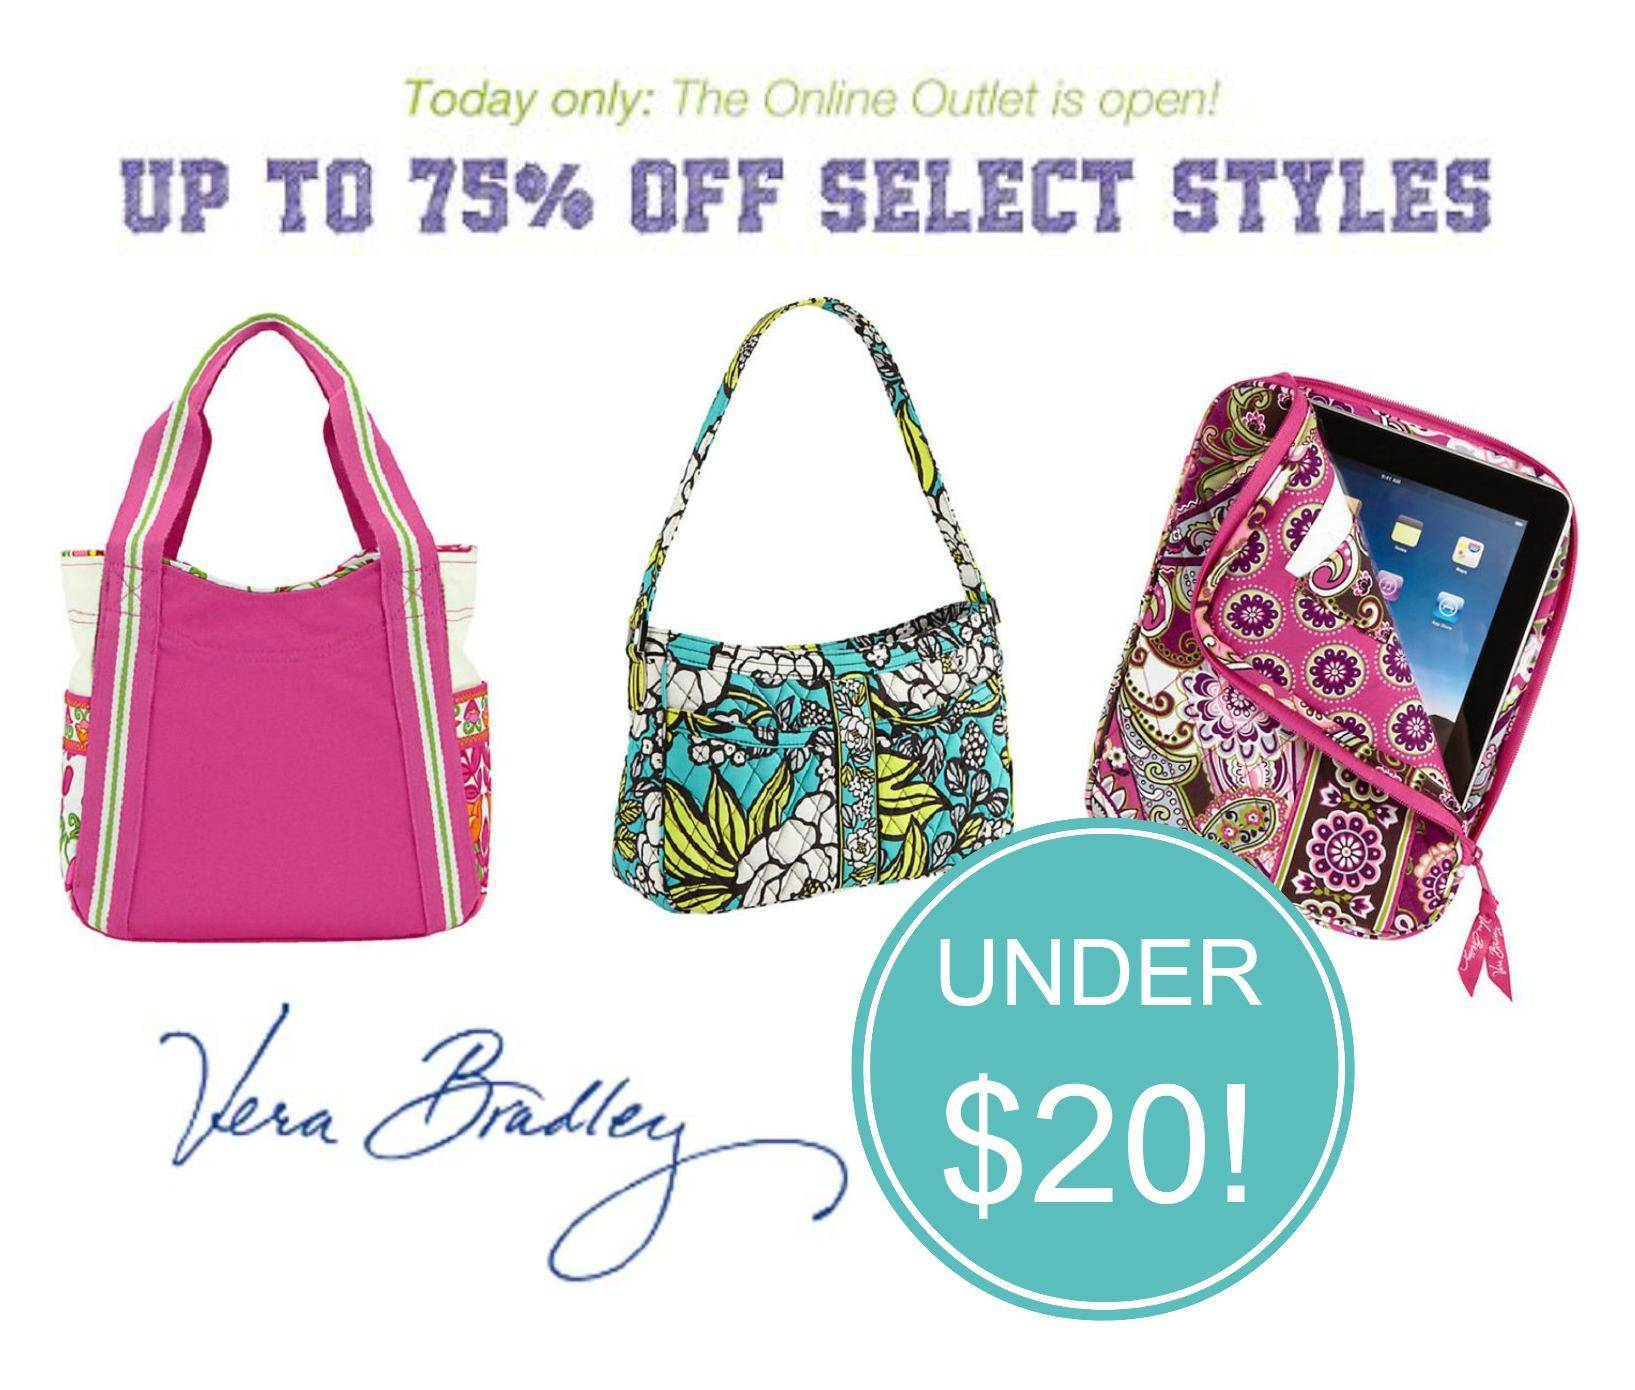 Vera Bradley Outlet Sale Today Only Items Under 20